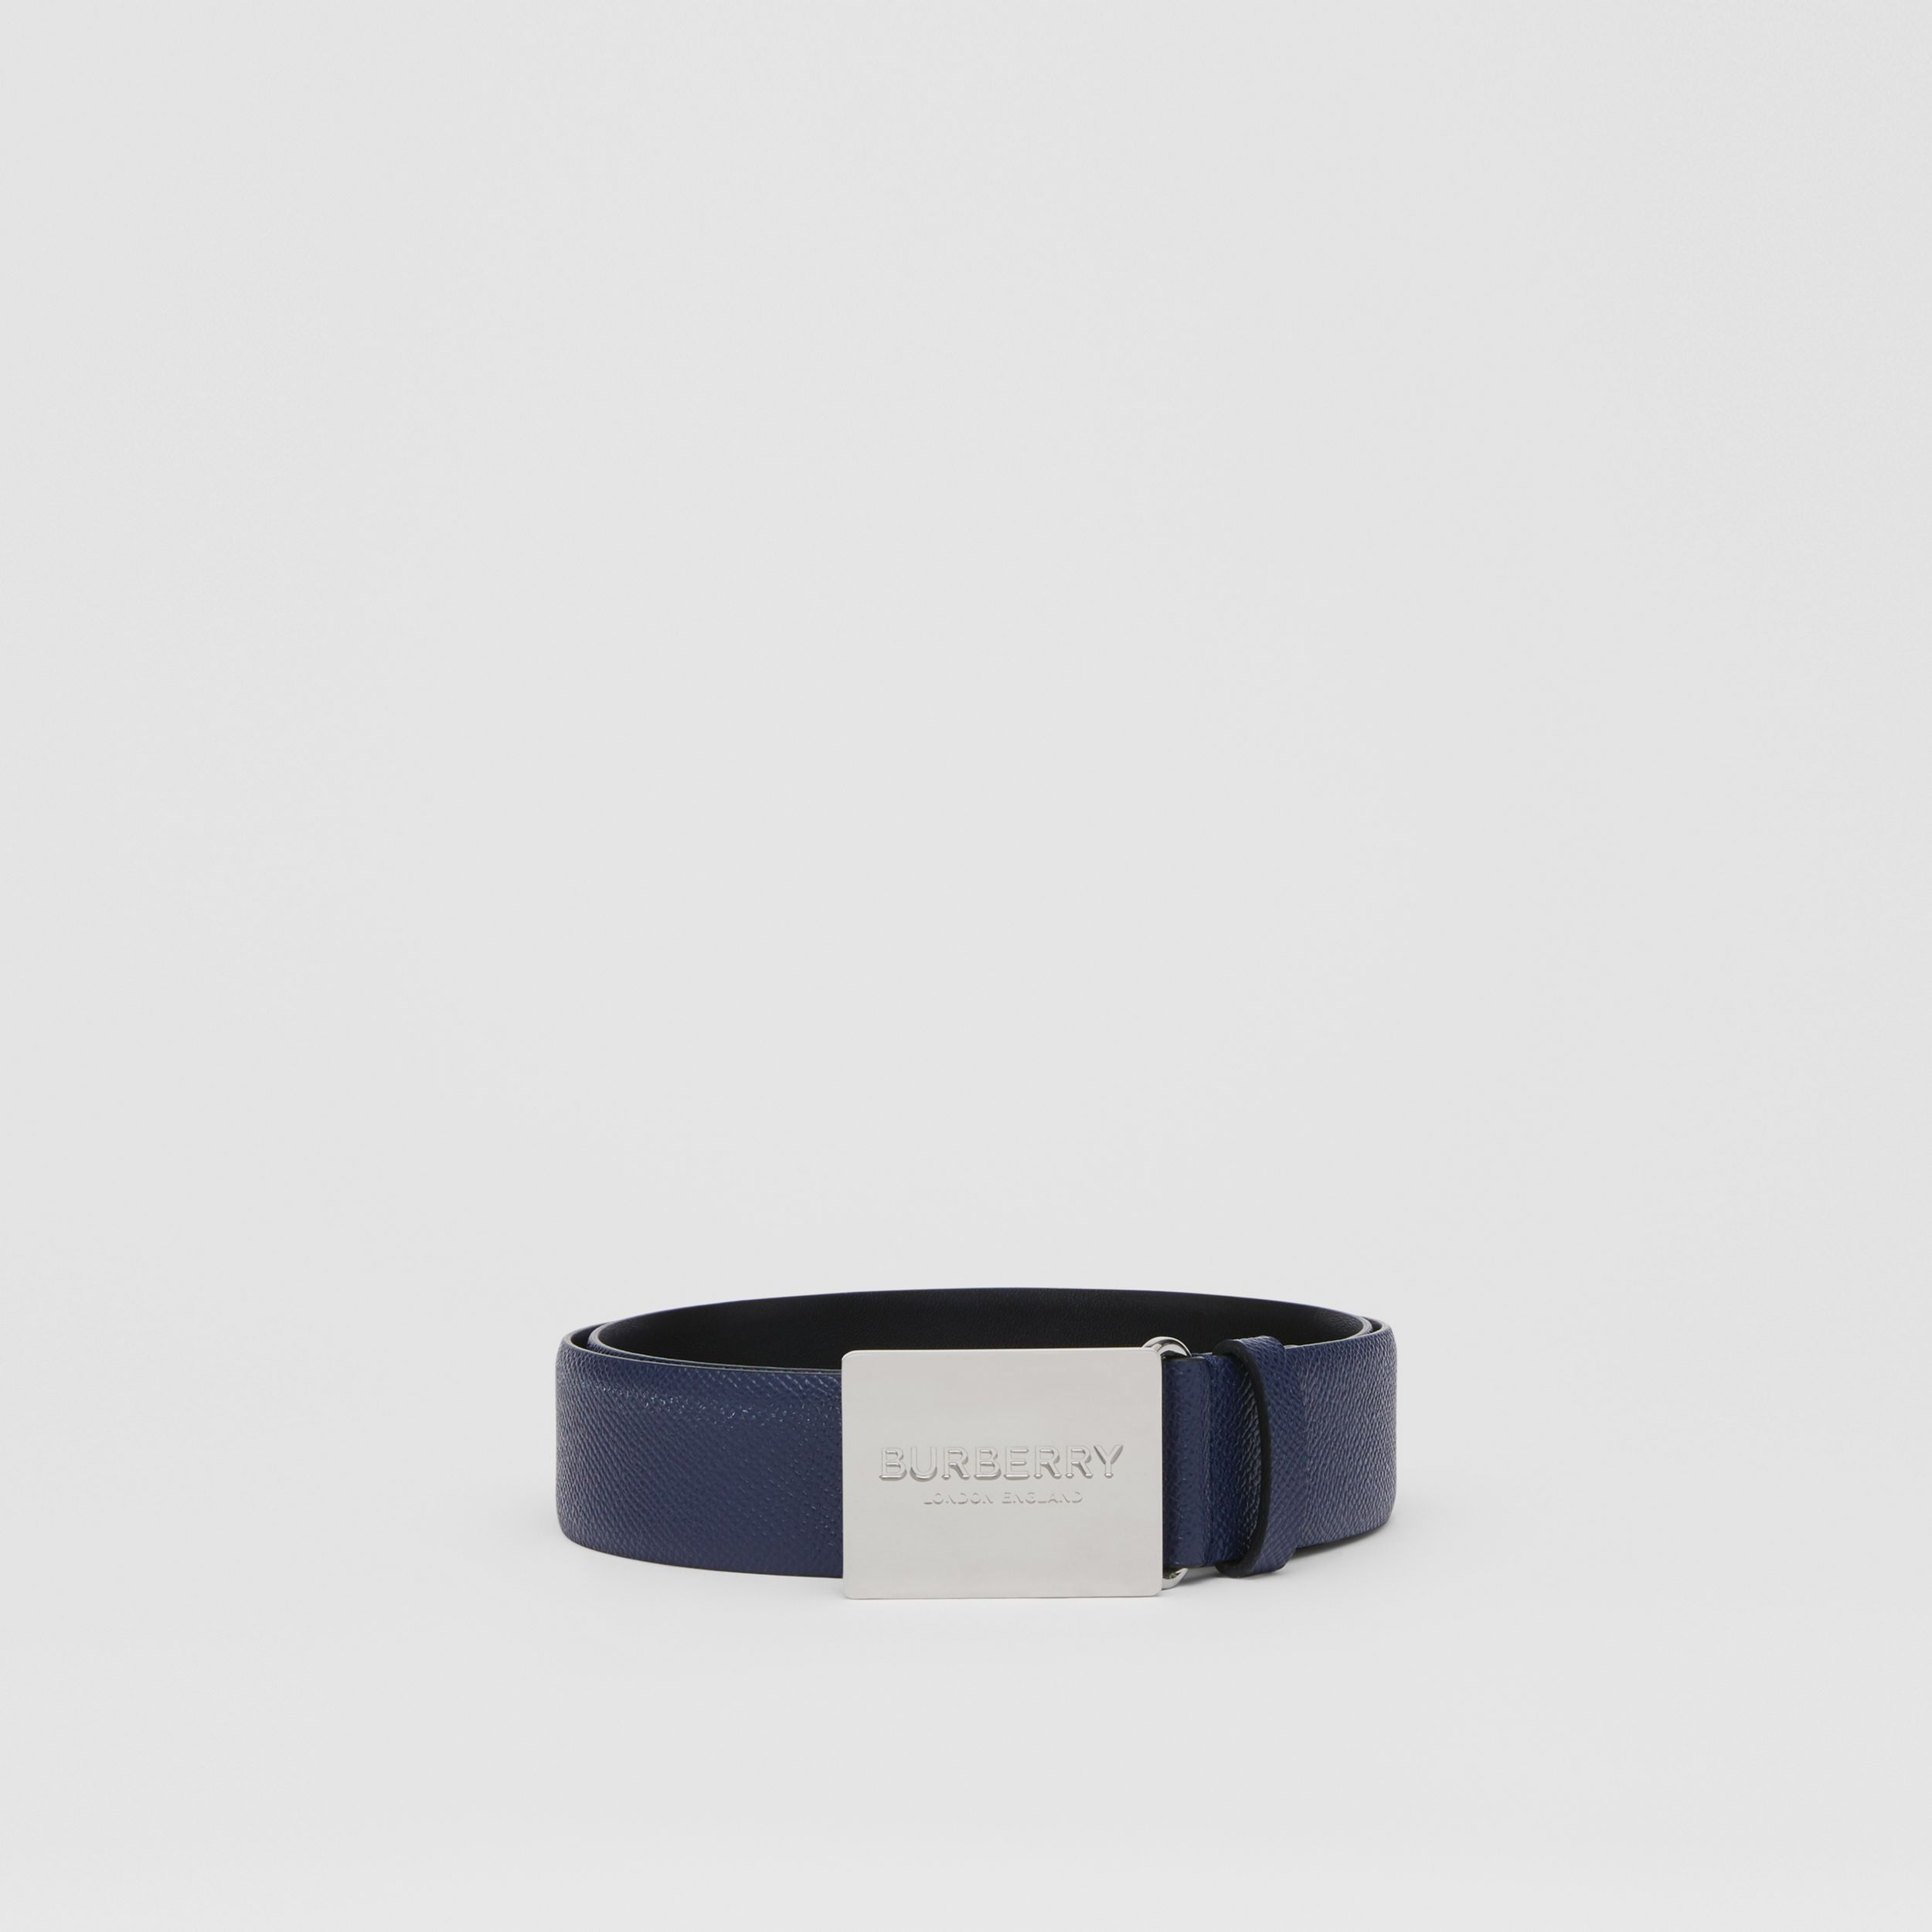 Plaque Buckle Grainy Leather Belt in Navy - Women | Burberry - 4